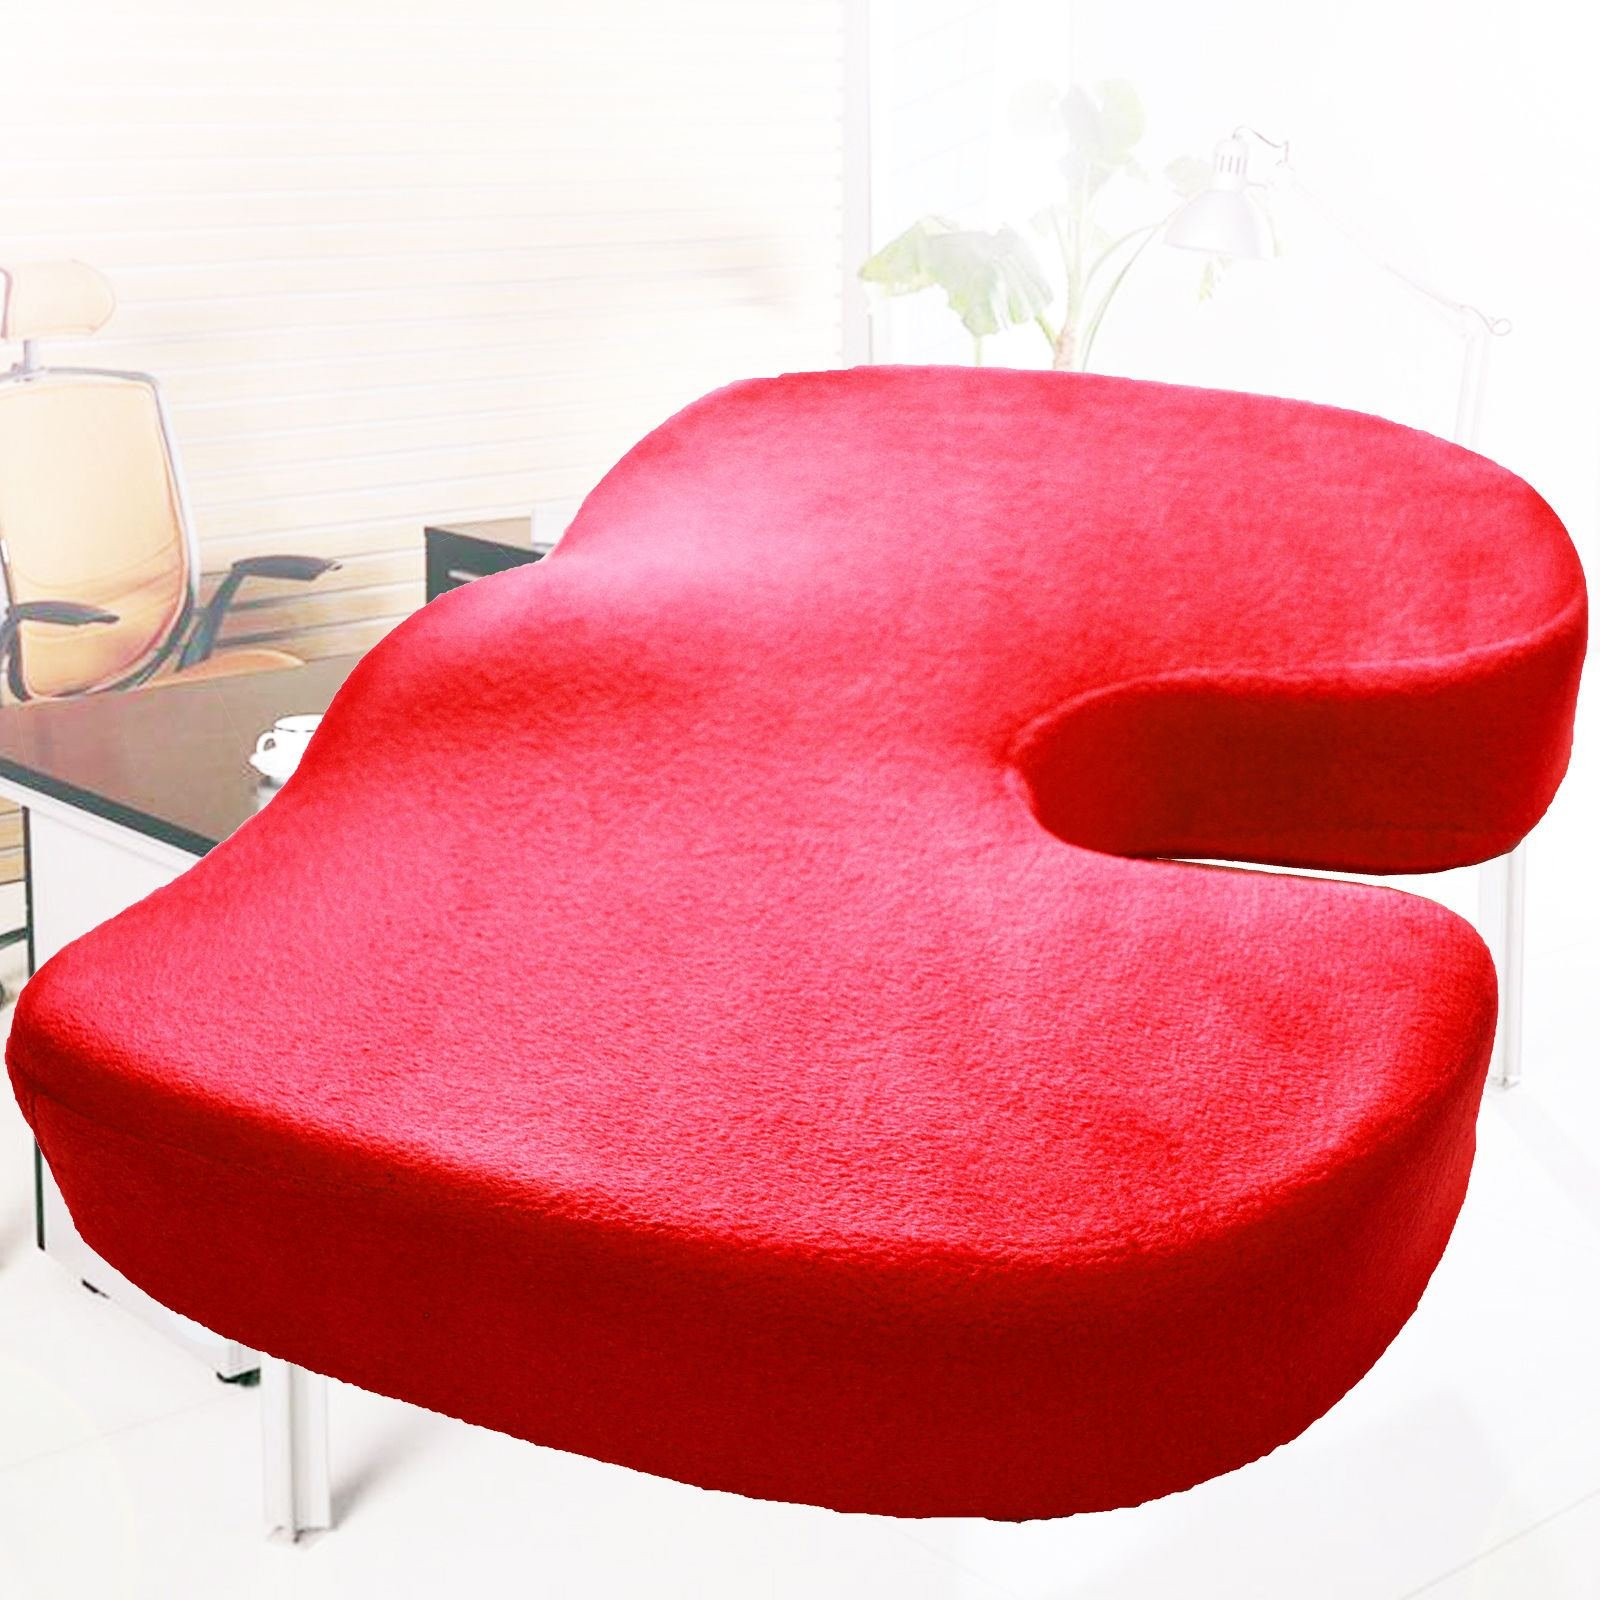 Memory Foam Coccyx Orthoped Car Seat Office Cushion Lumbar Pain Relief Pillow (Red)